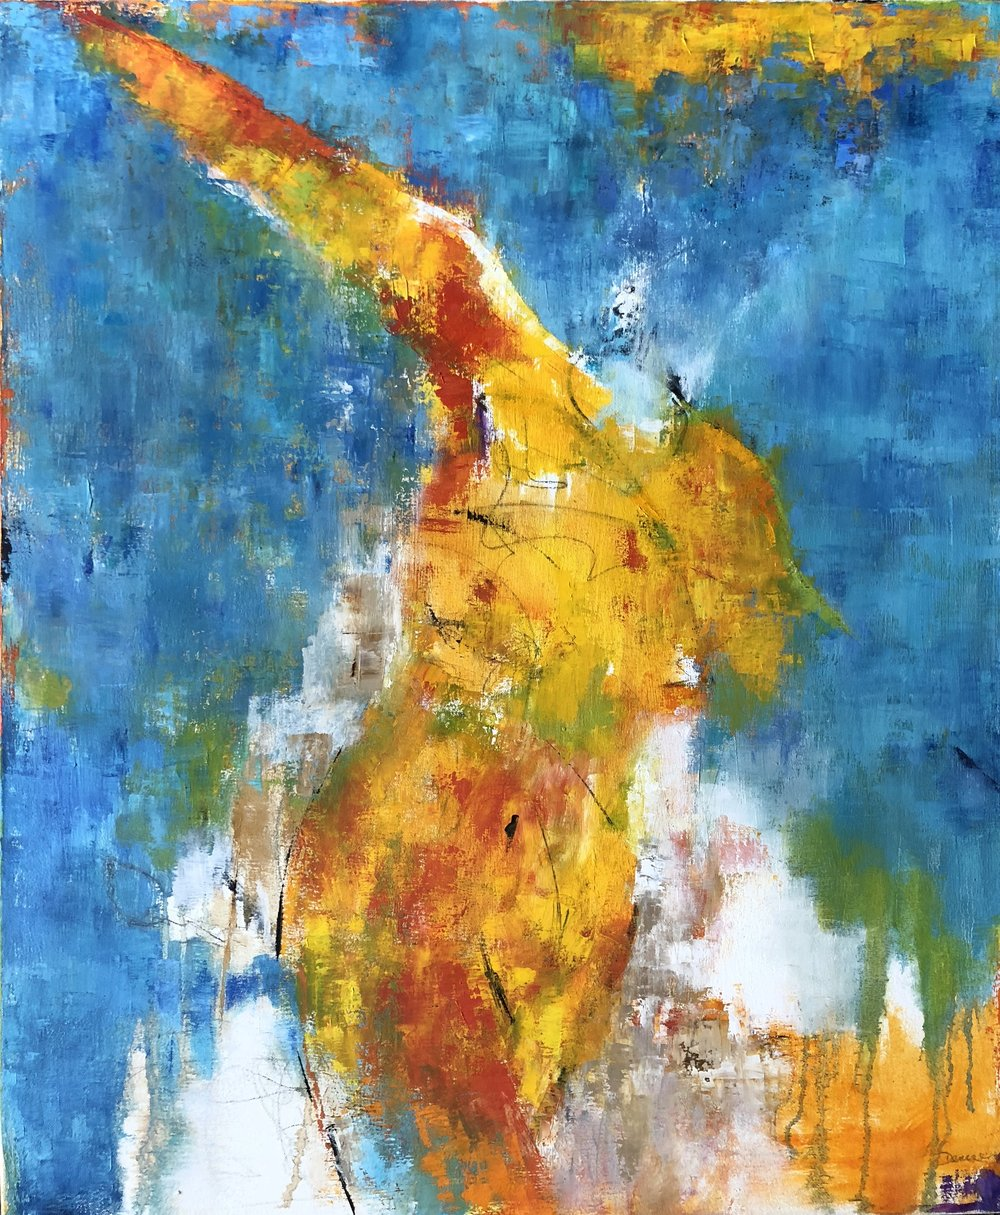 """Footloose and Fancy Free, Oil on Canvas, 30""""x36"""", SOLD"""